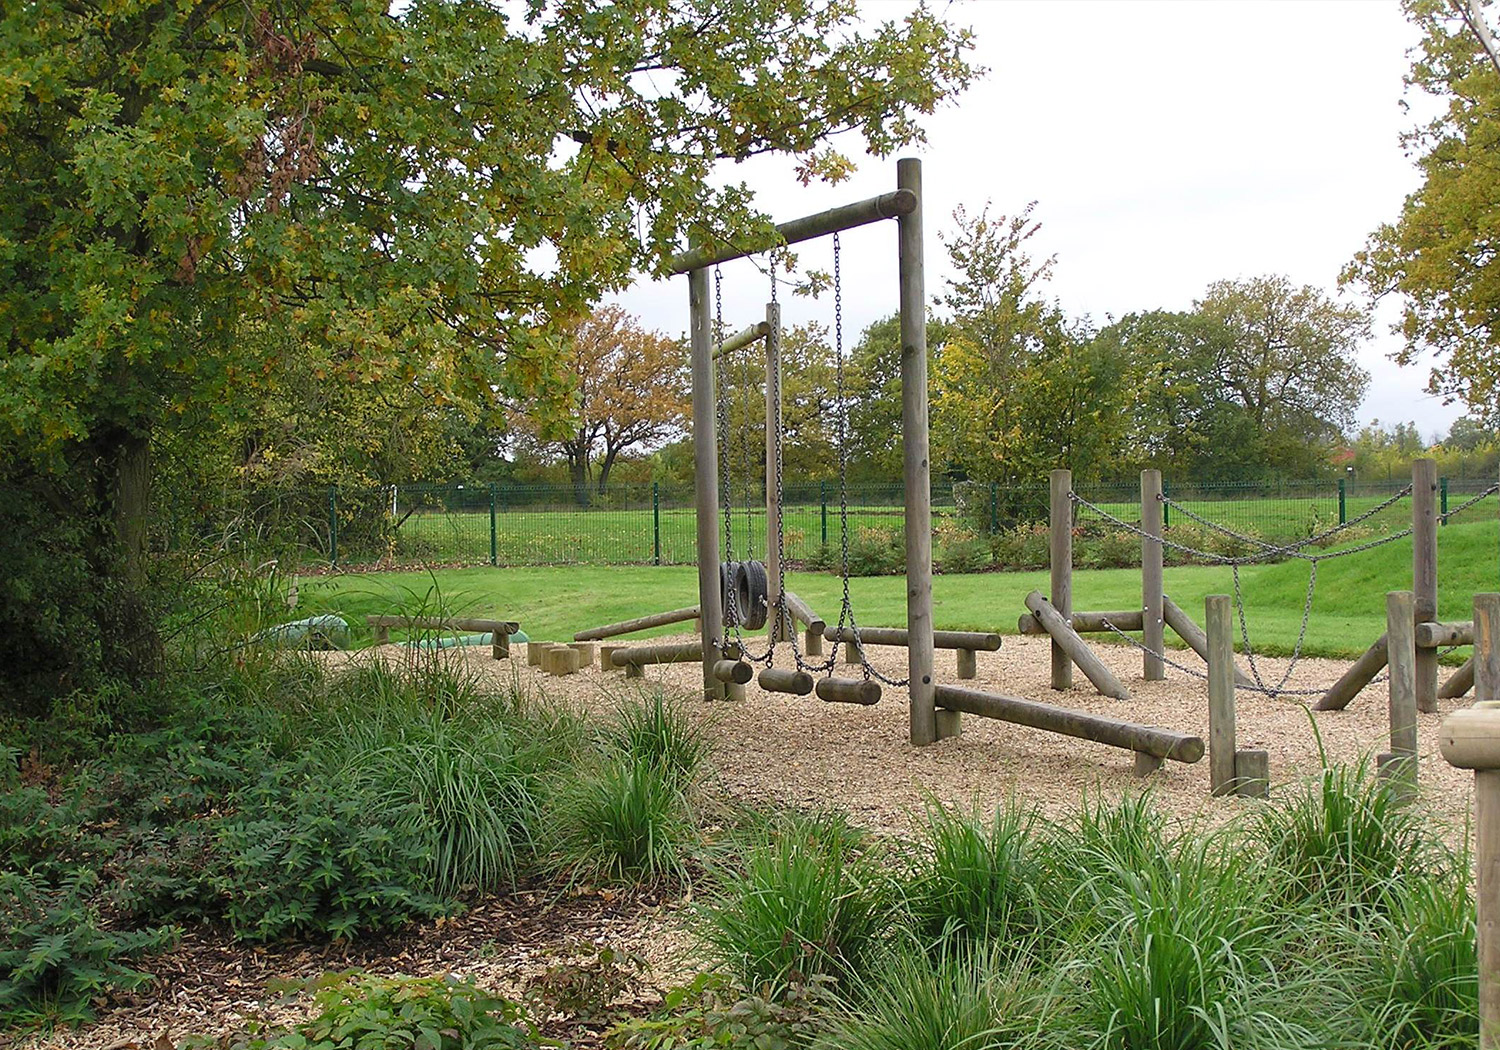 Projects-Education-Barnet-WoodenEquip-1500x1050